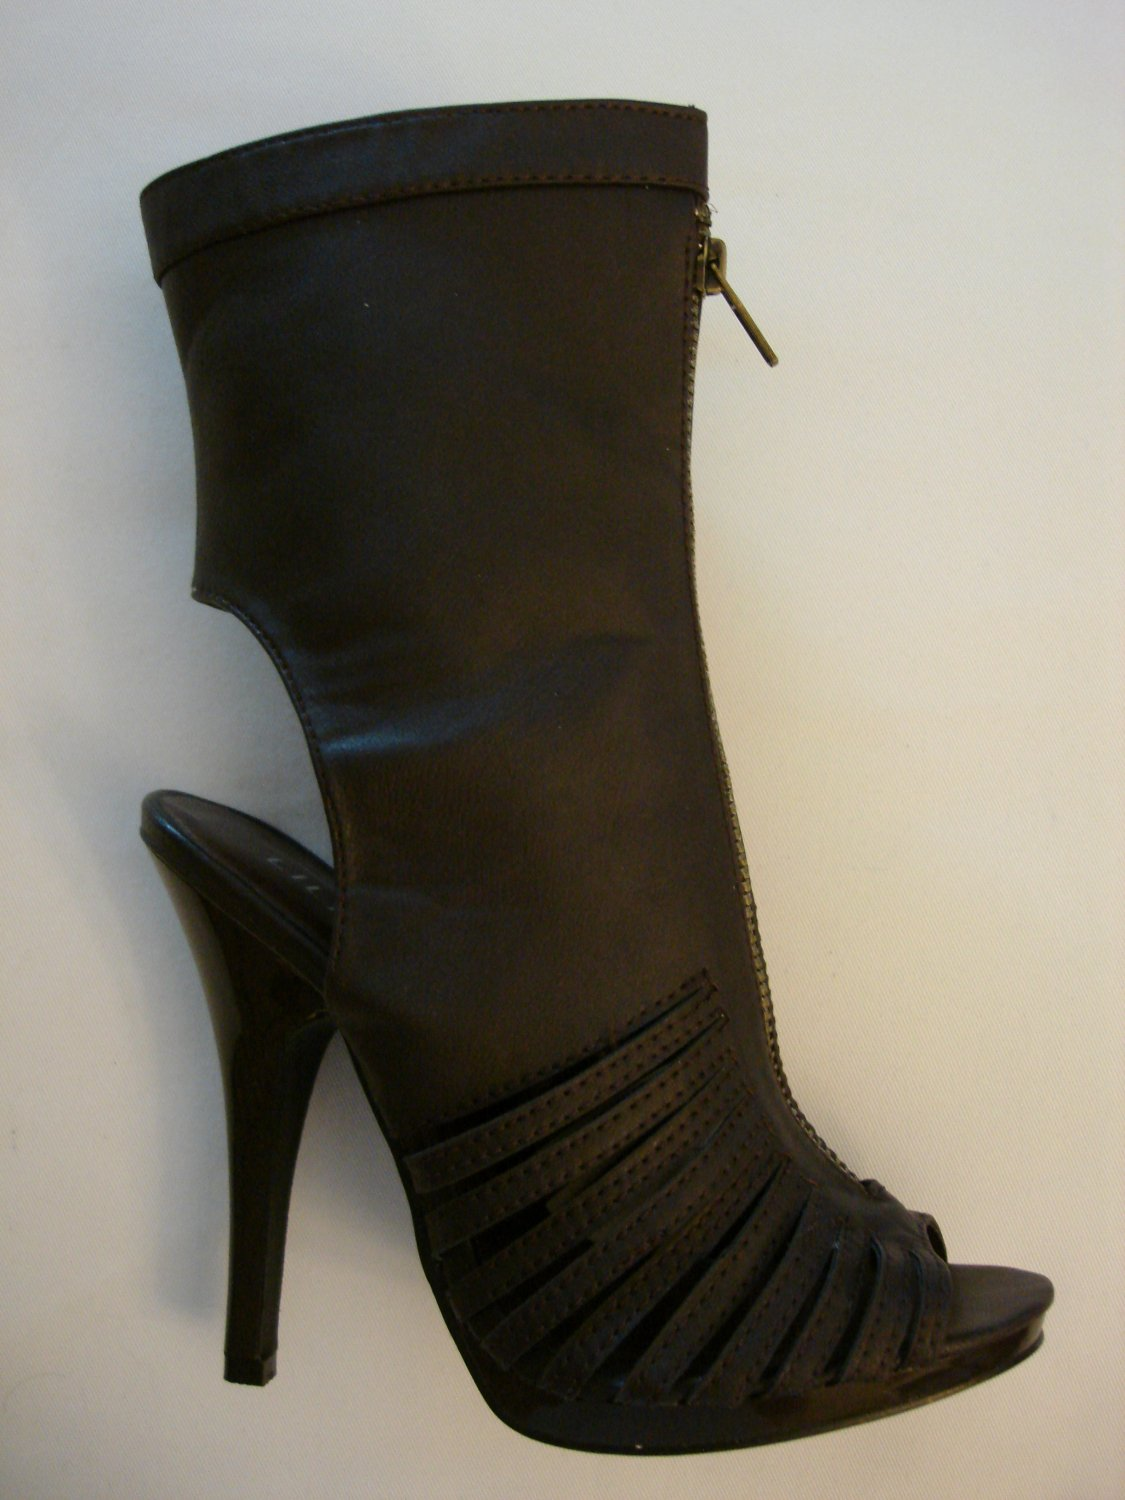 7- Brown Gladiator Boots